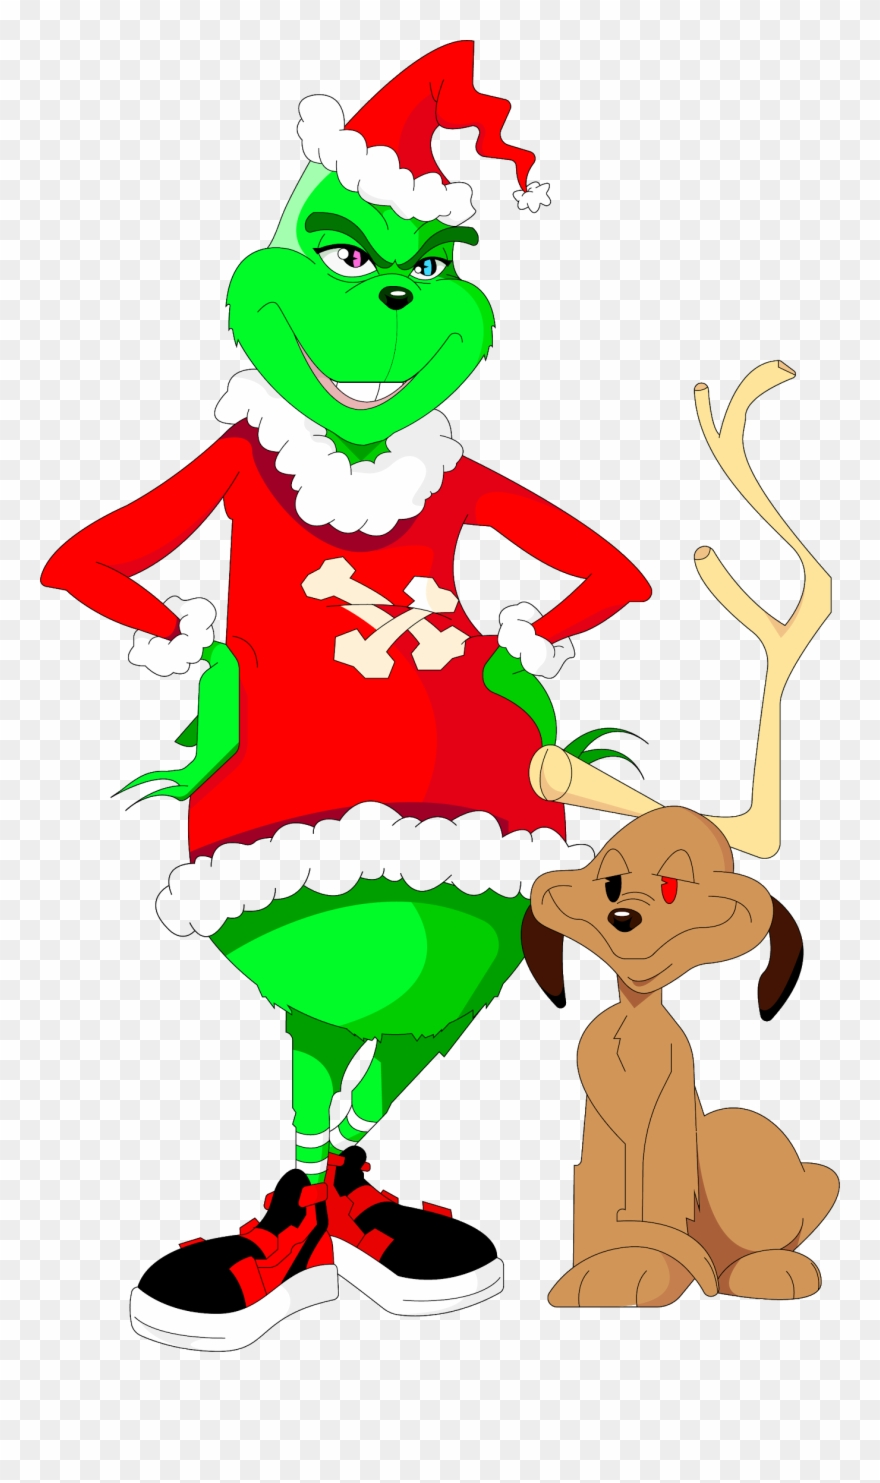 Image Of The Grinch.